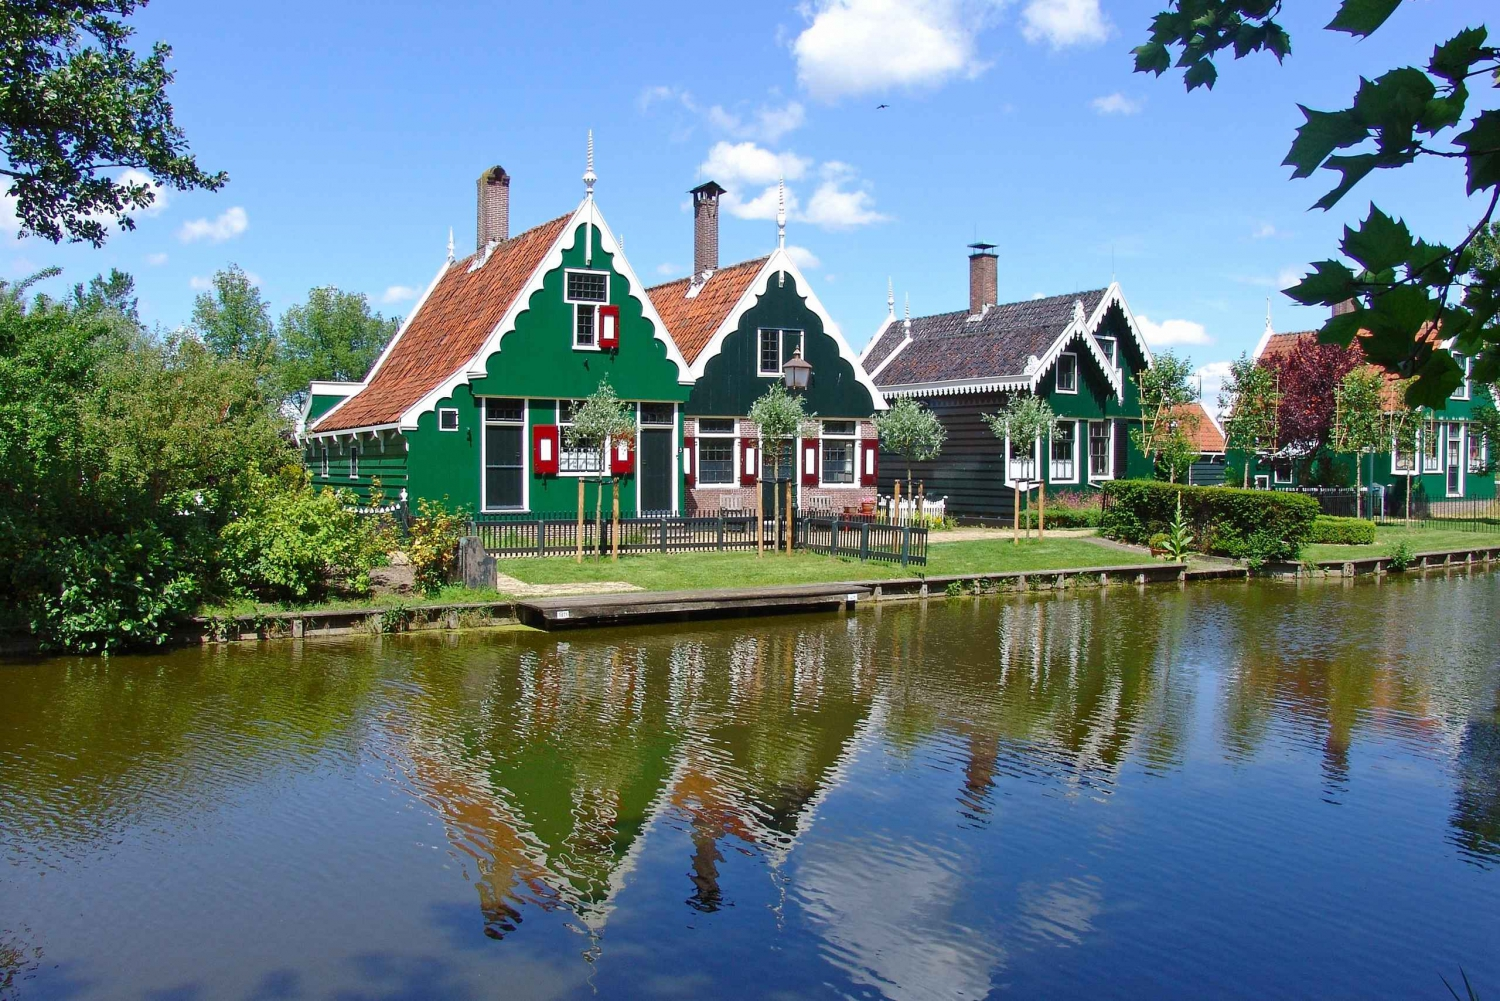 Volendam, Edam, and Windmills Tour from Amsterdam